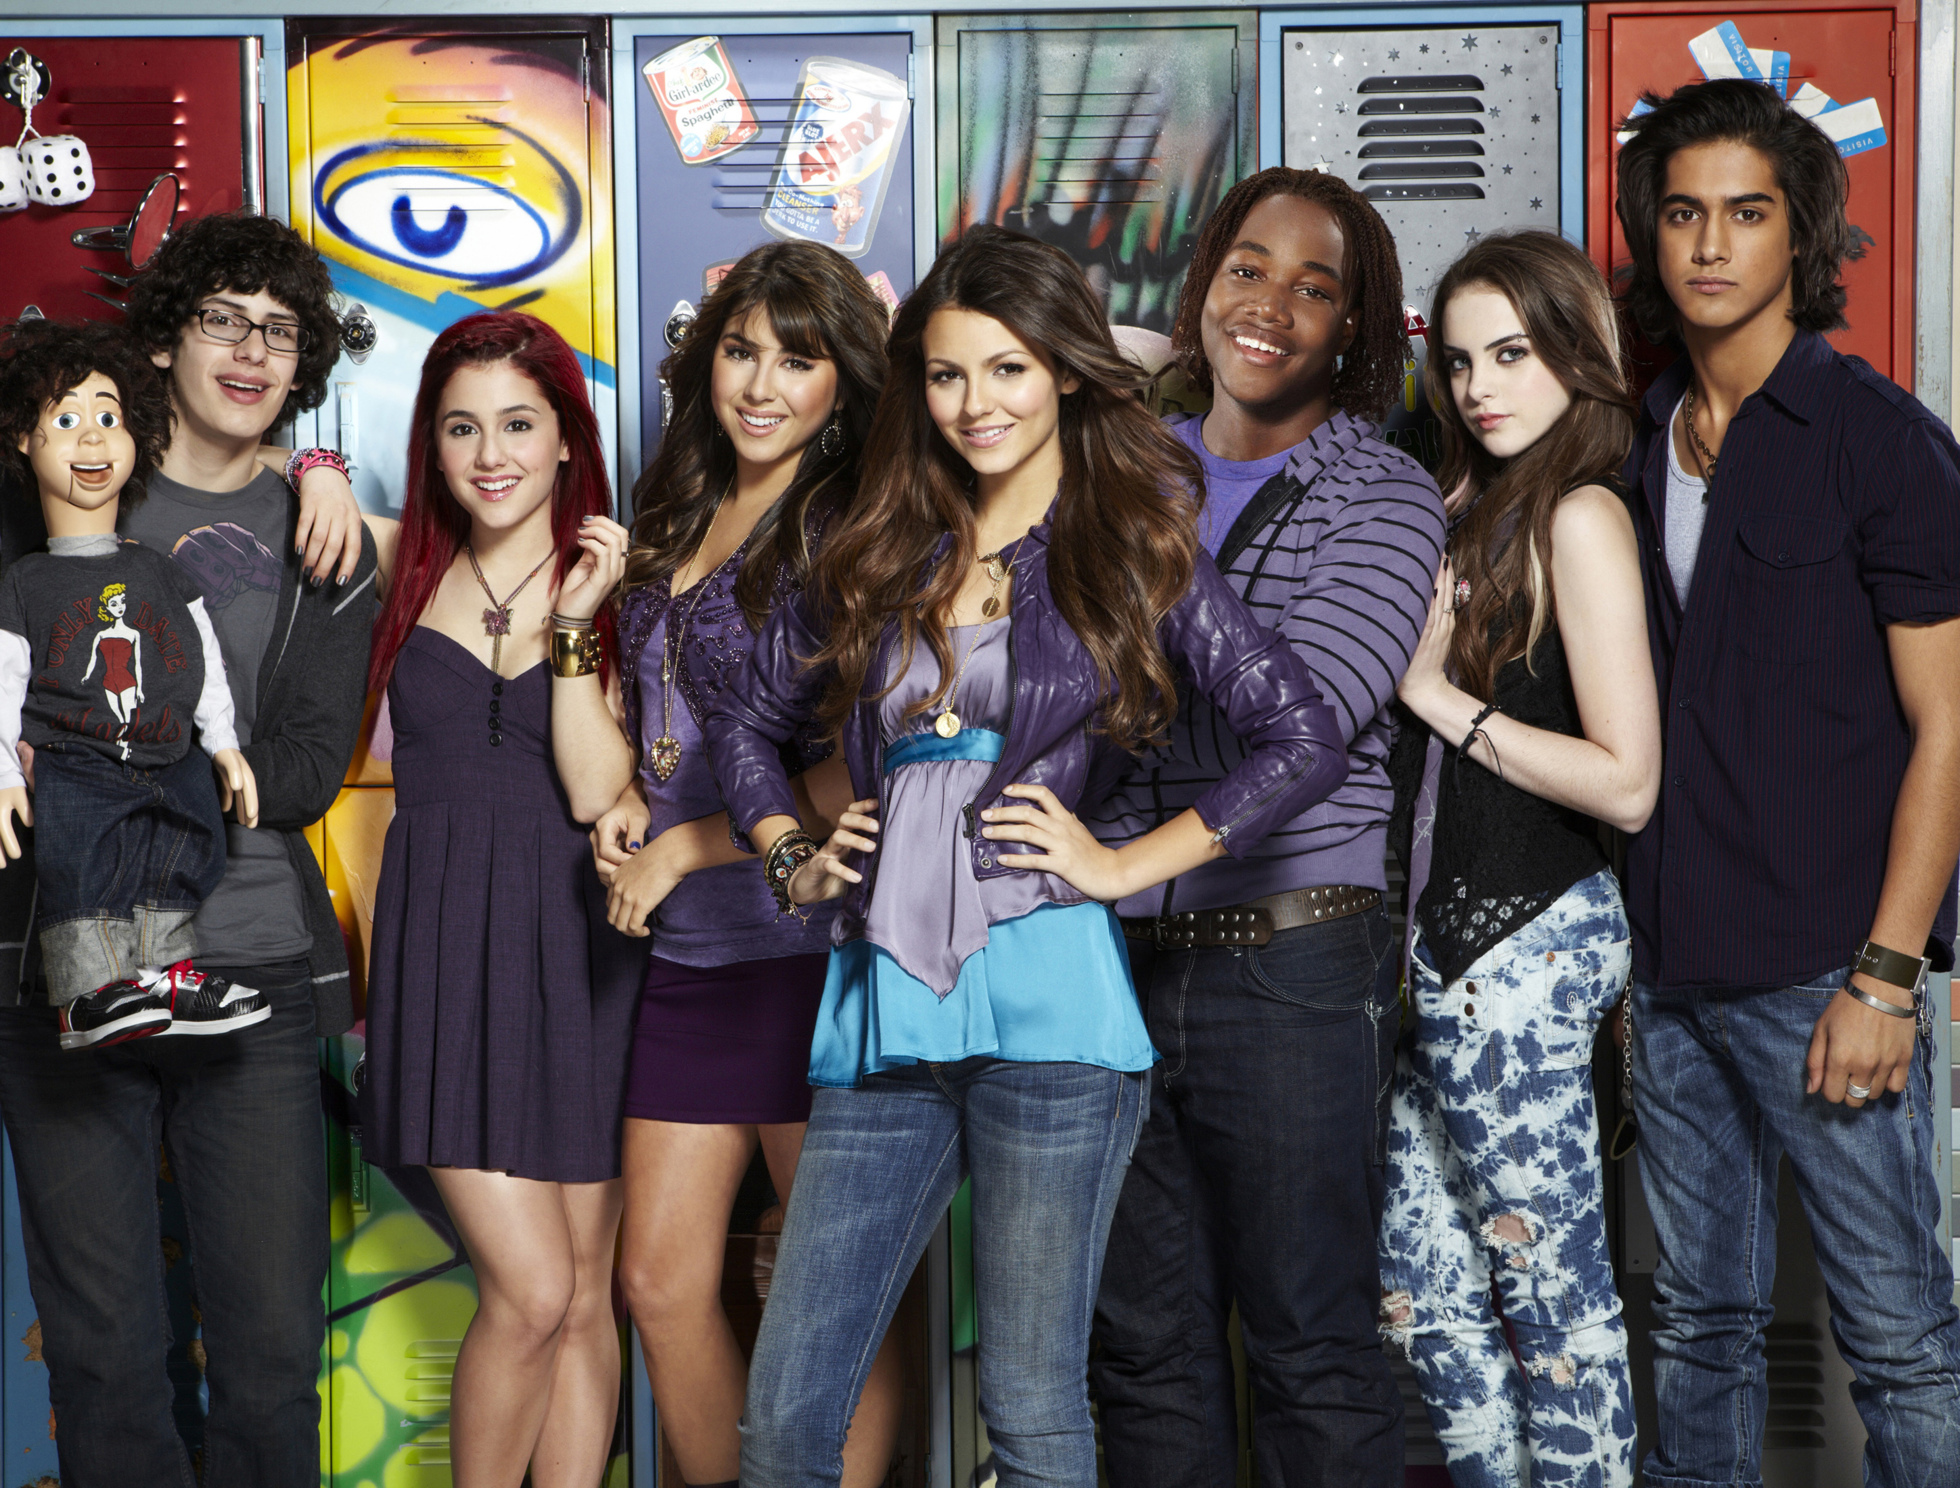 Victorious Theme Song | Movie Theme Songs & TV Soundtracks